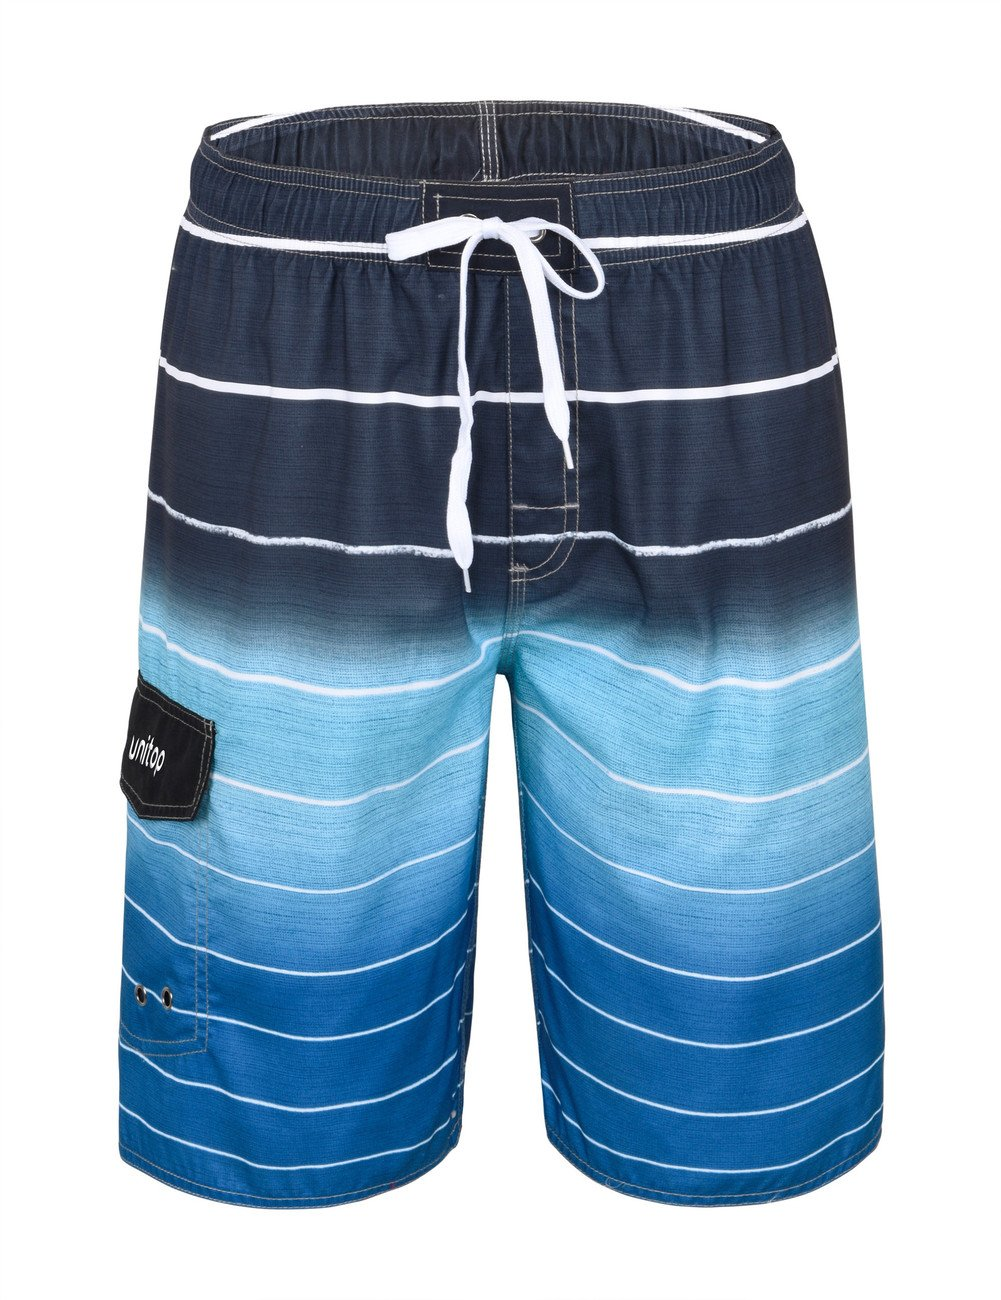 Unitop Men's Colortful Striped Swim Trunks Bathing Beach Board Shorts with Lining Blue-32 by Unitop